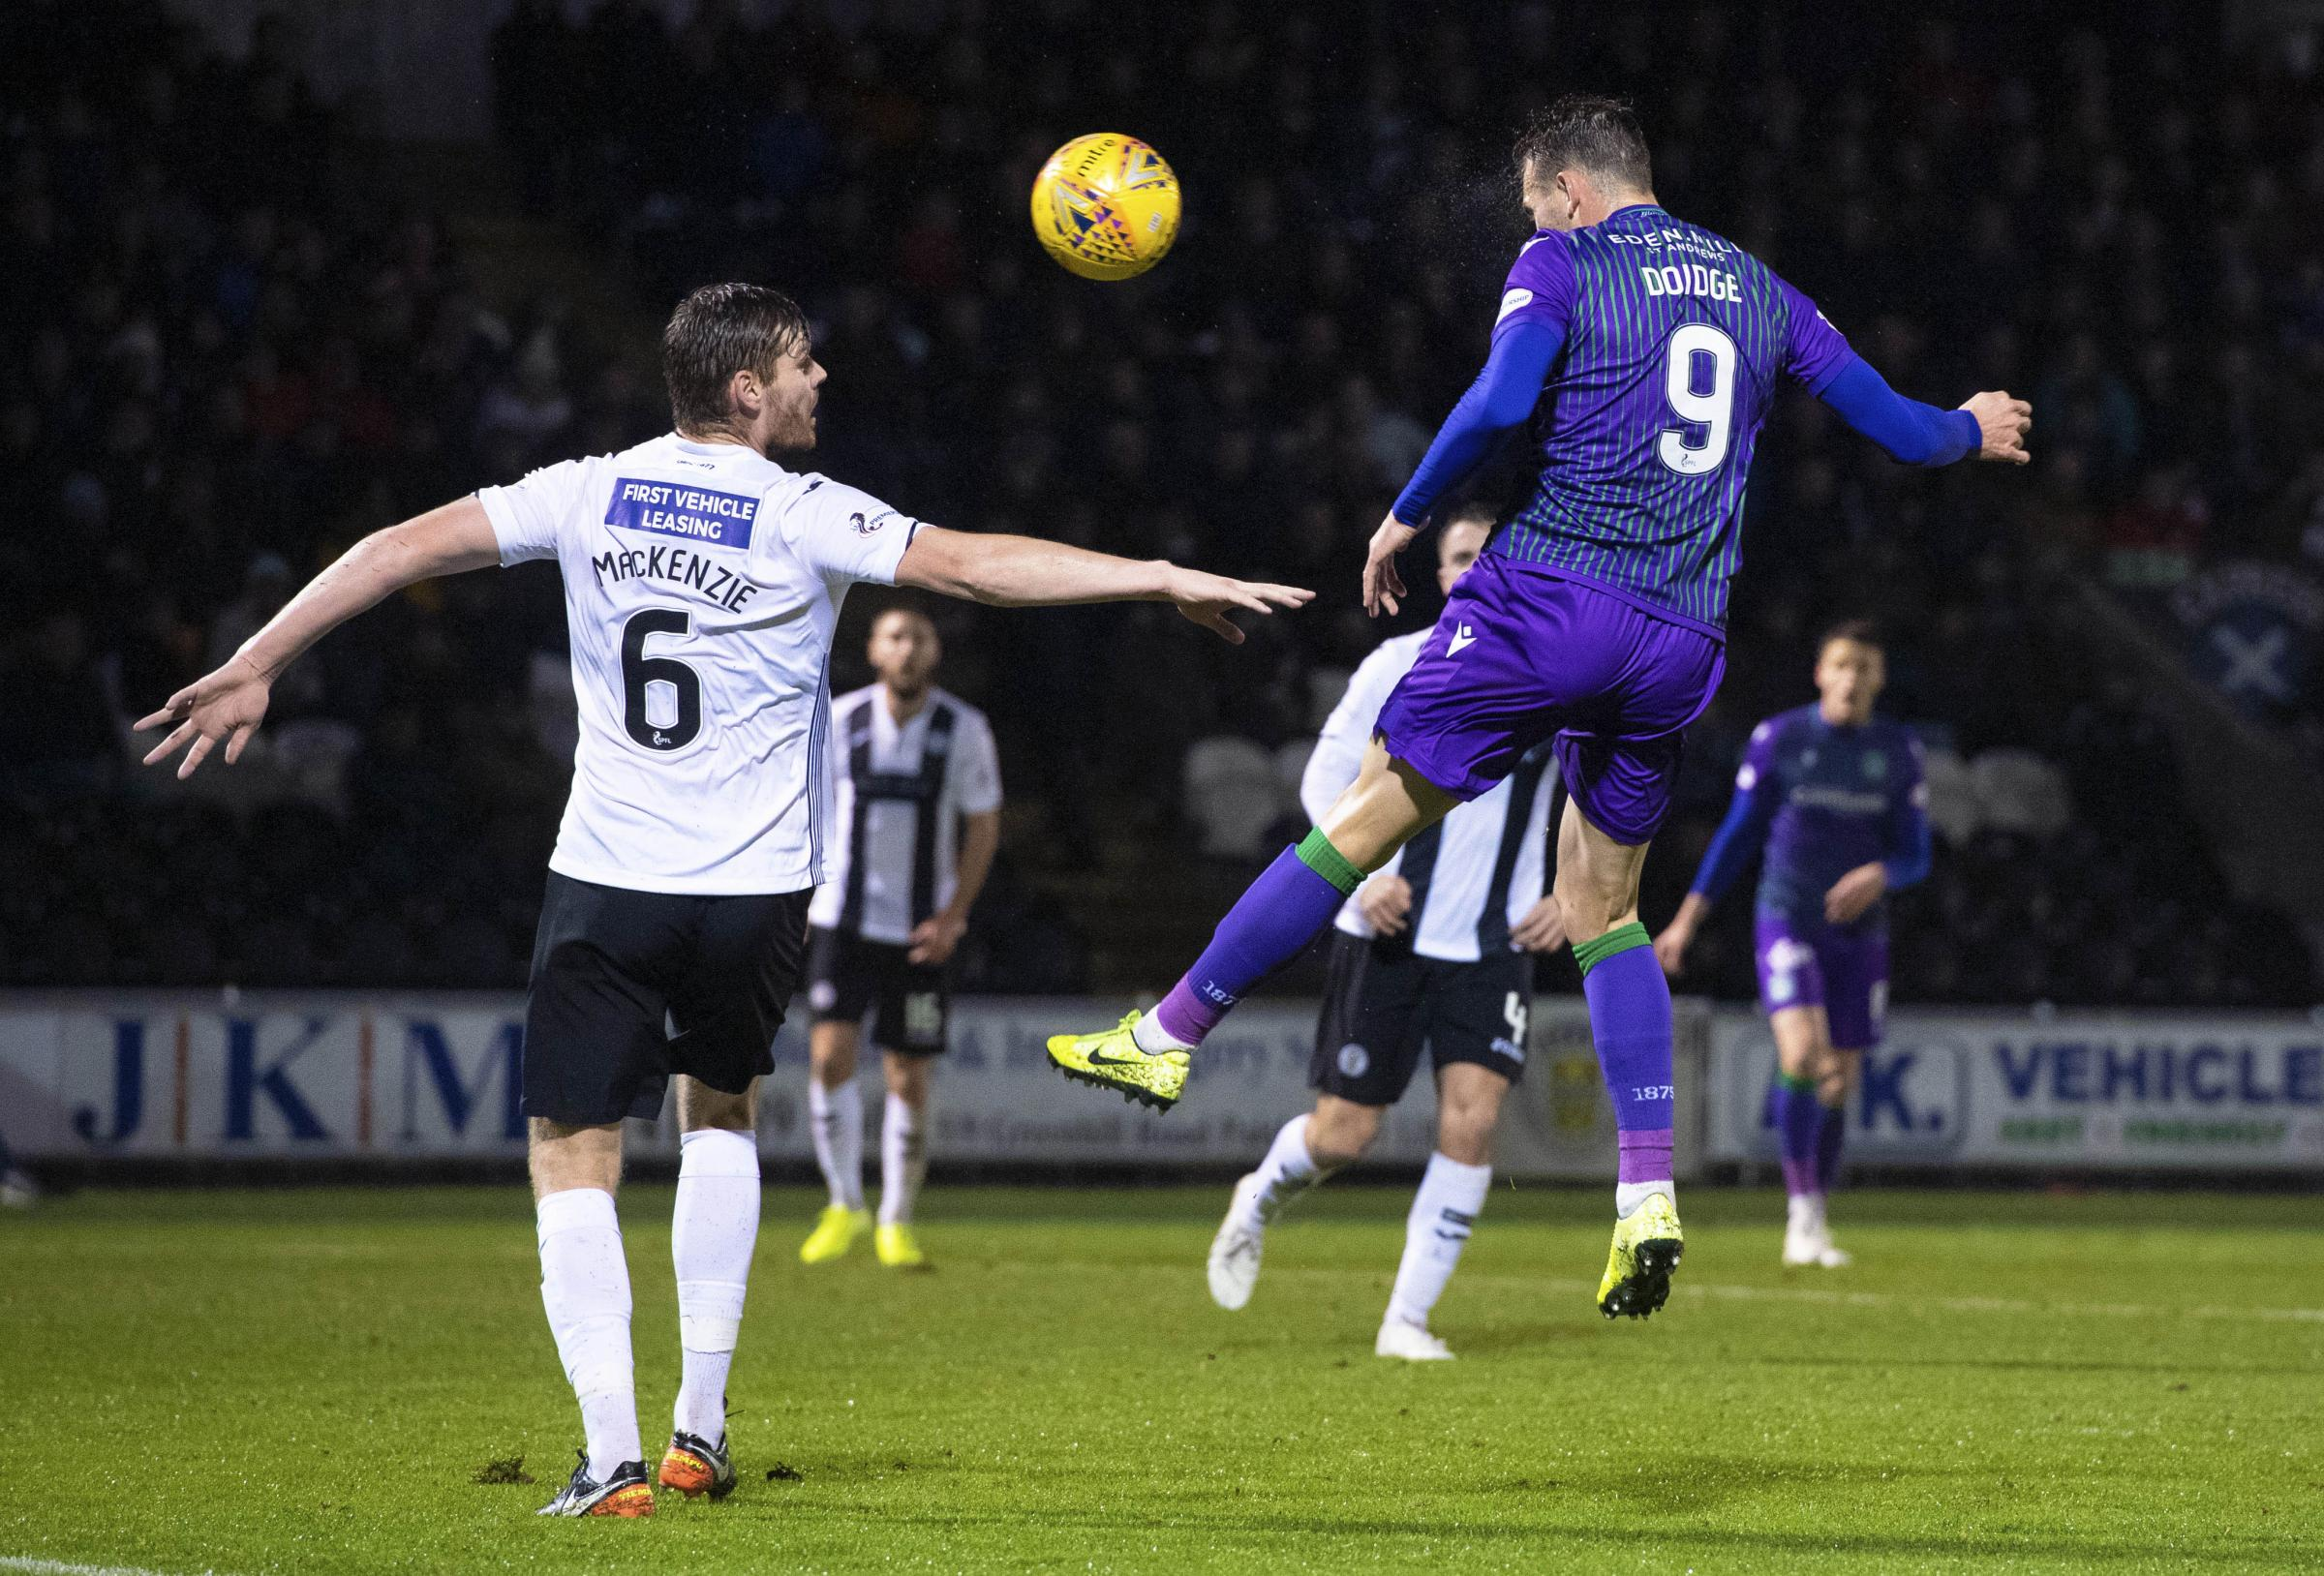 Relief as Jack Ross marks St Mirren return with win for hesitant Hibs